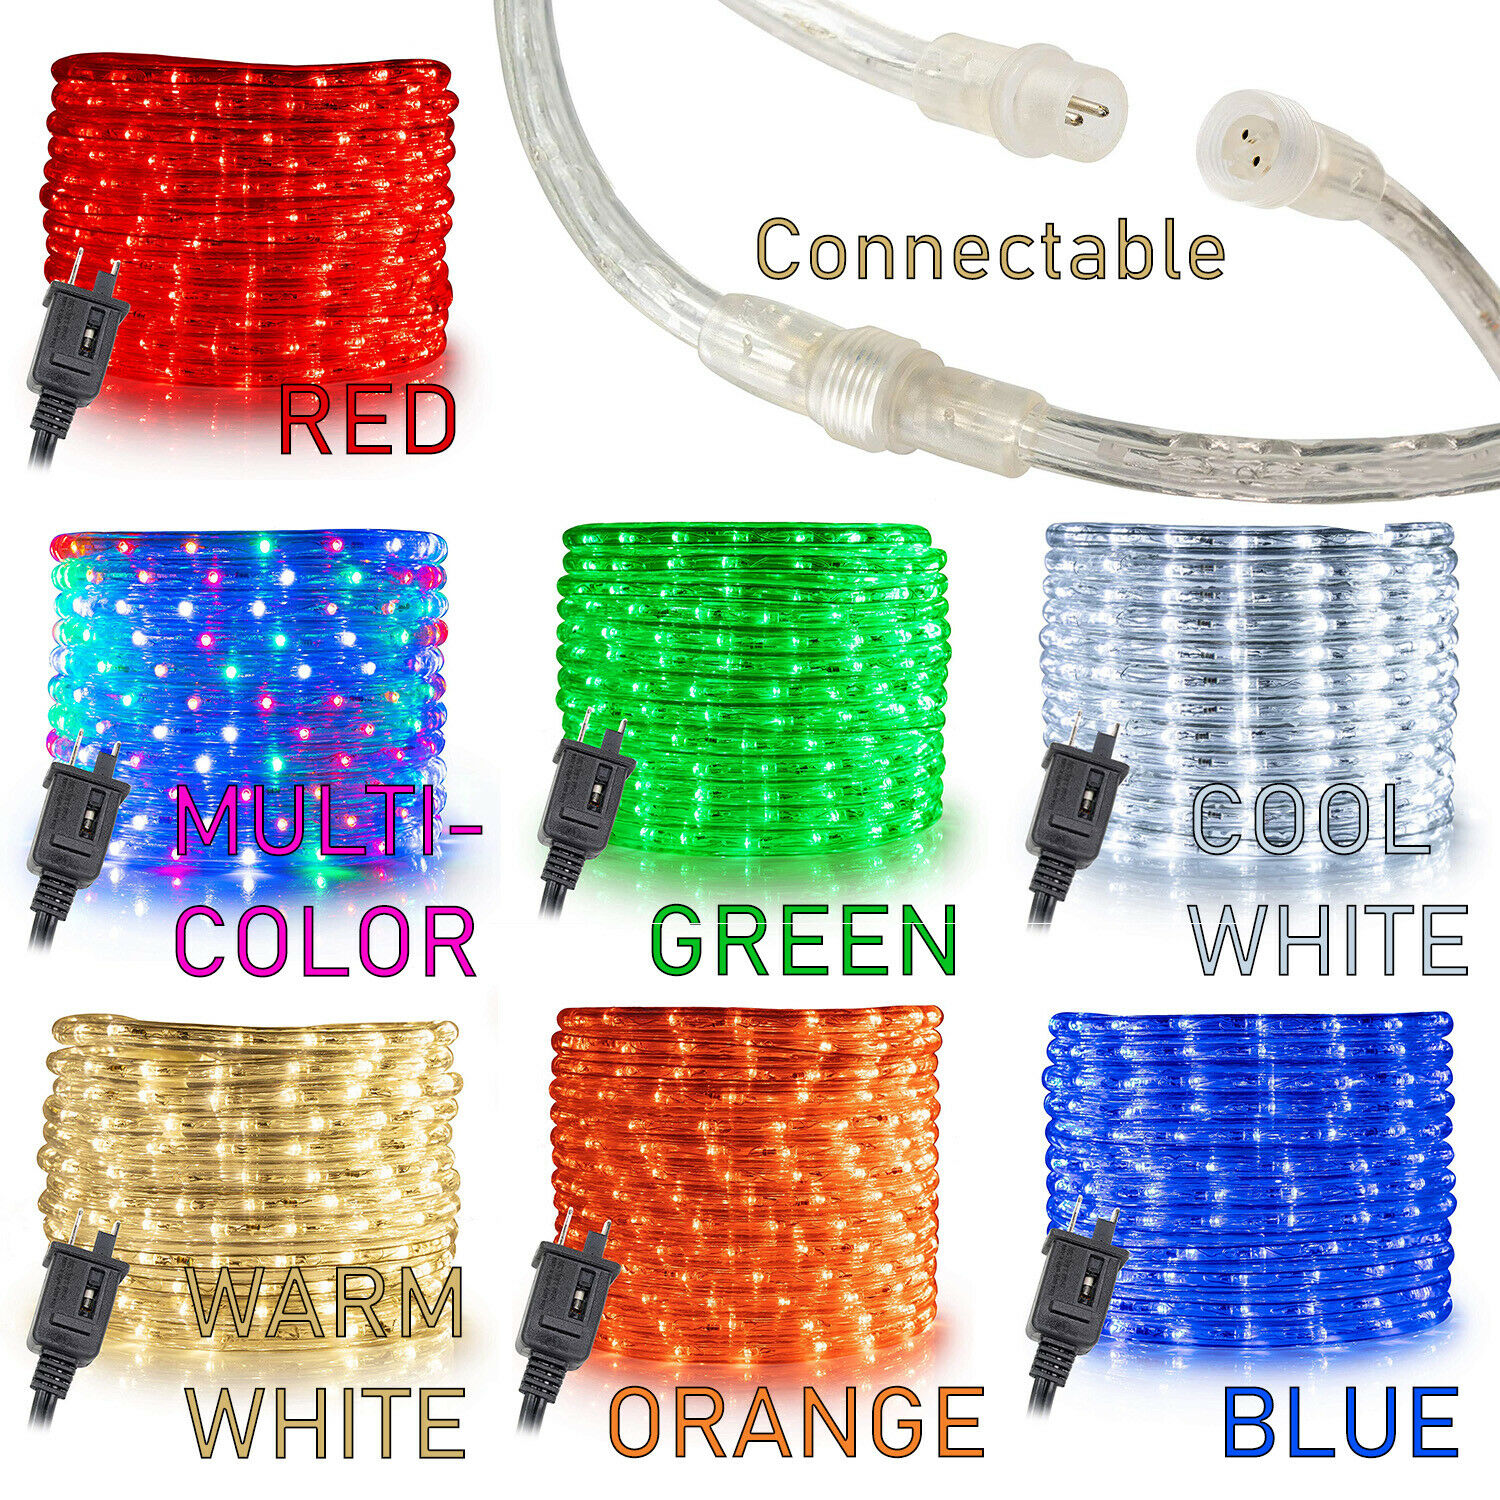 10, 25, 50 ft Option Warm White LED Rope Lights 2 Wire Accent Holiday Christmas Party Decoration Extendable Lighting | ETL Certified West Ivory 1//2 25 feet